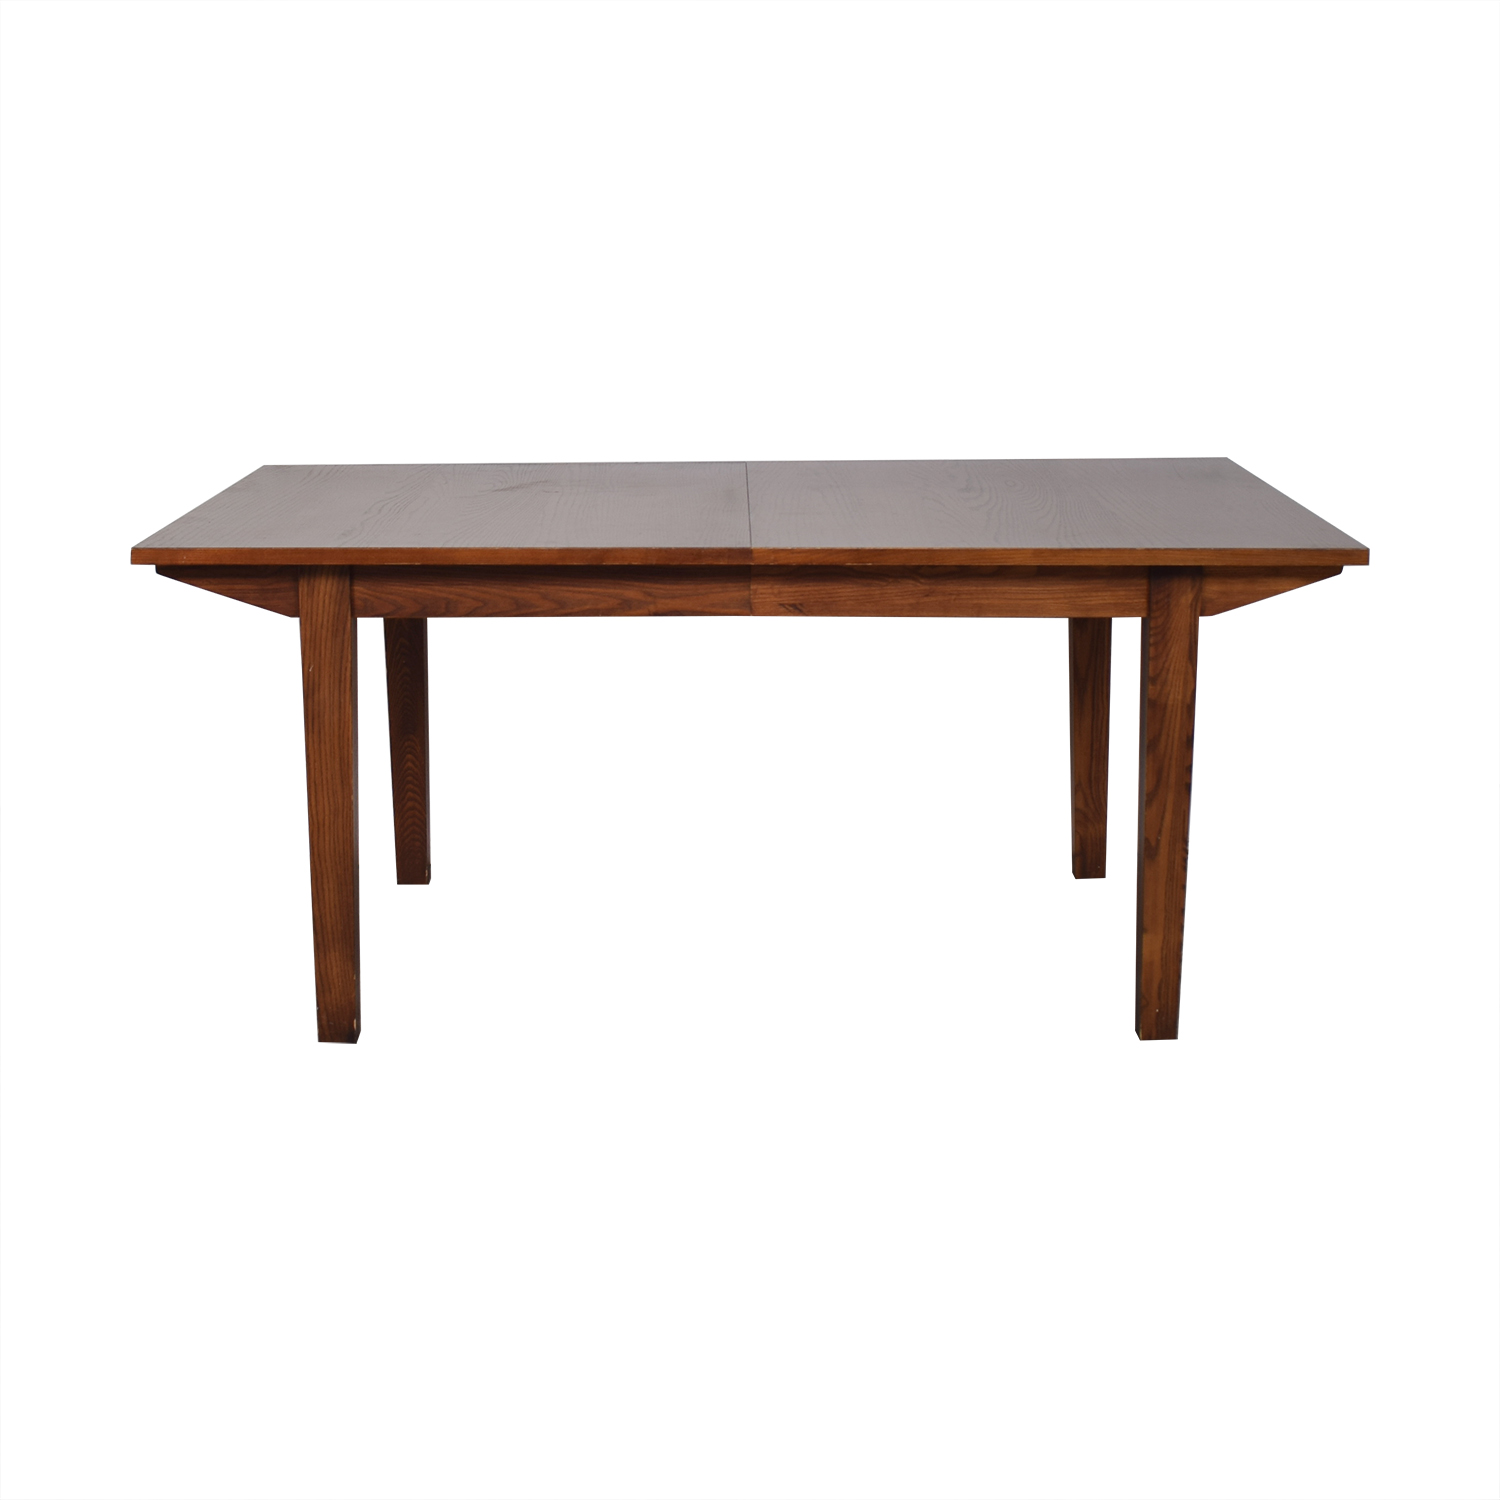 Ethan Allen Ethan Allen Wood Extension Dining Table on sale